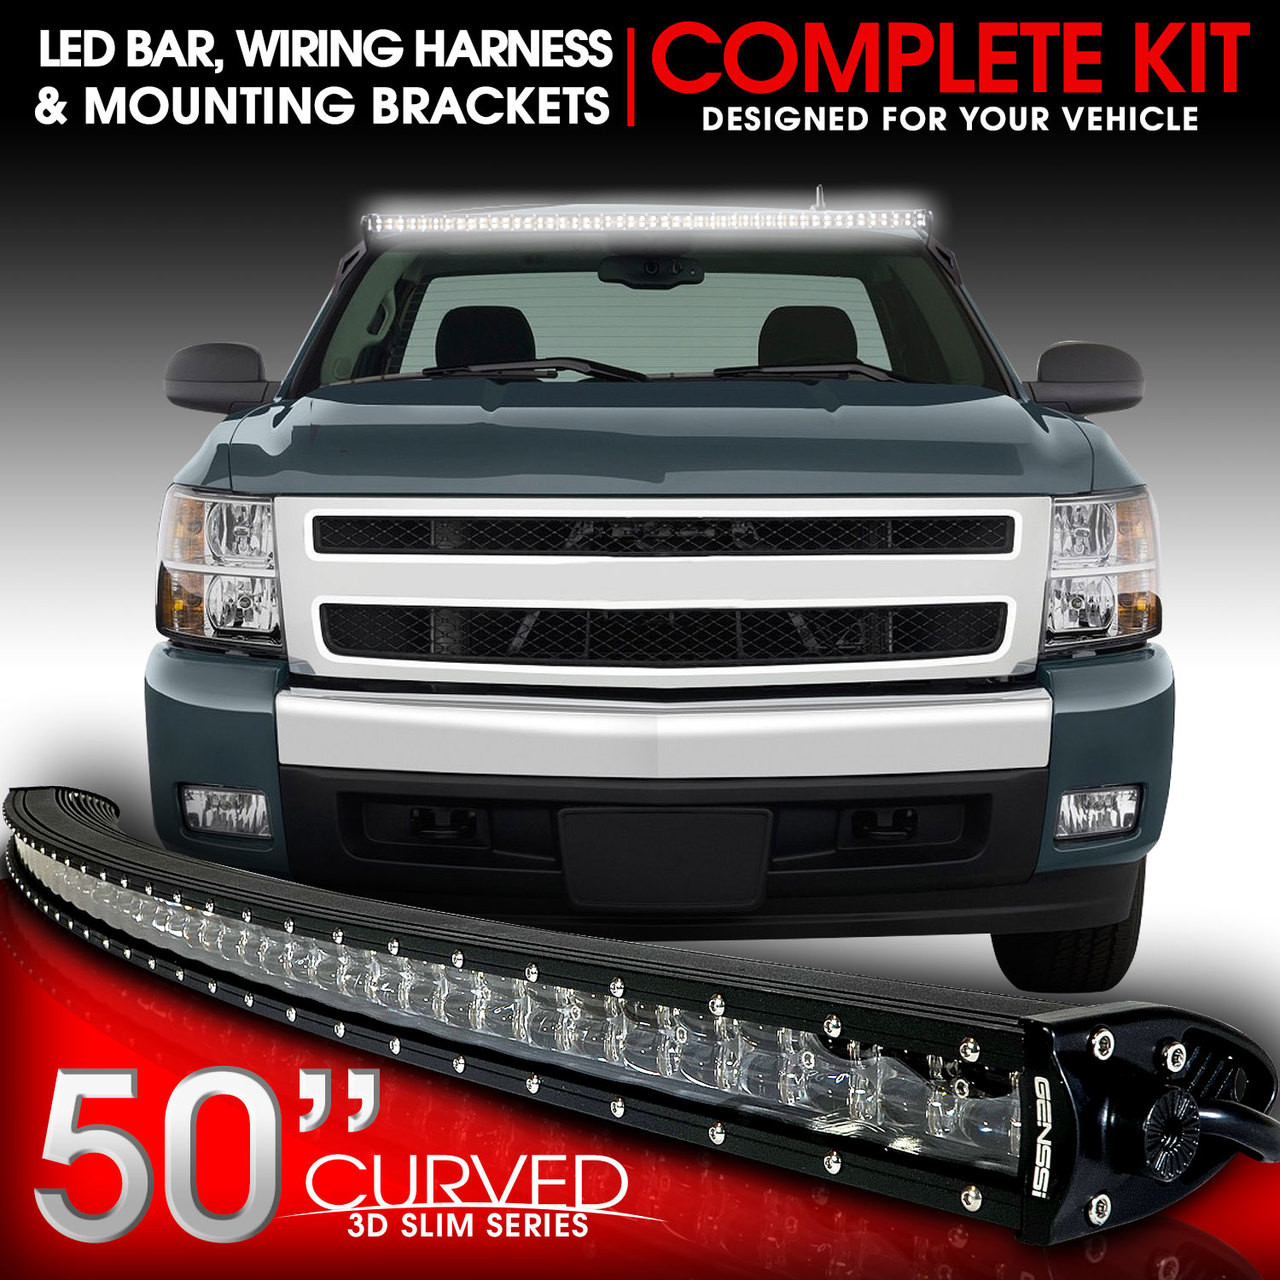 GEN CUR36 2007 2013 Chevy and GMC Curved 288W 50_ebay__02072.1506622663?c=2&imbypass=on led light bar curved 288w 50 inches bracket wiring harness kit for